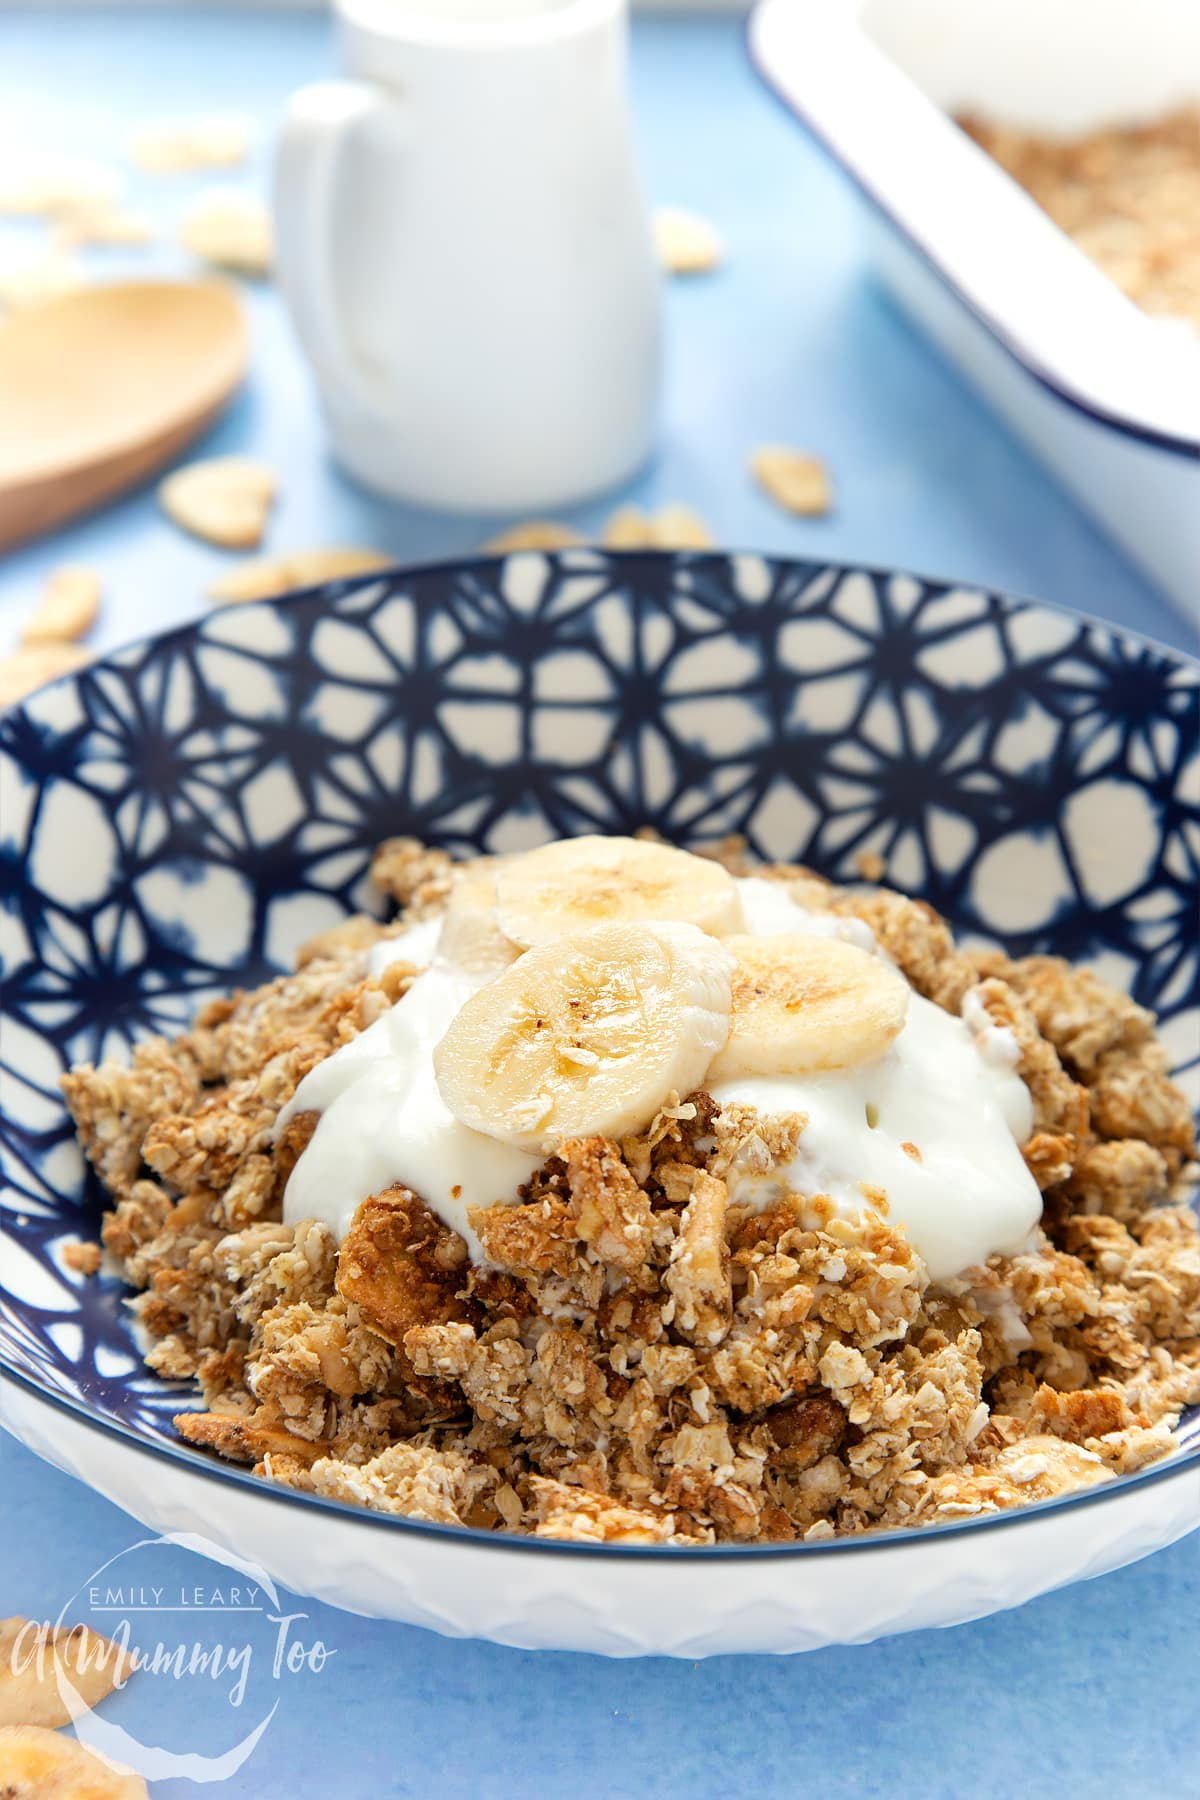 Banana coconut granola in a bowl, topped with yogurt and fresh banana slices.